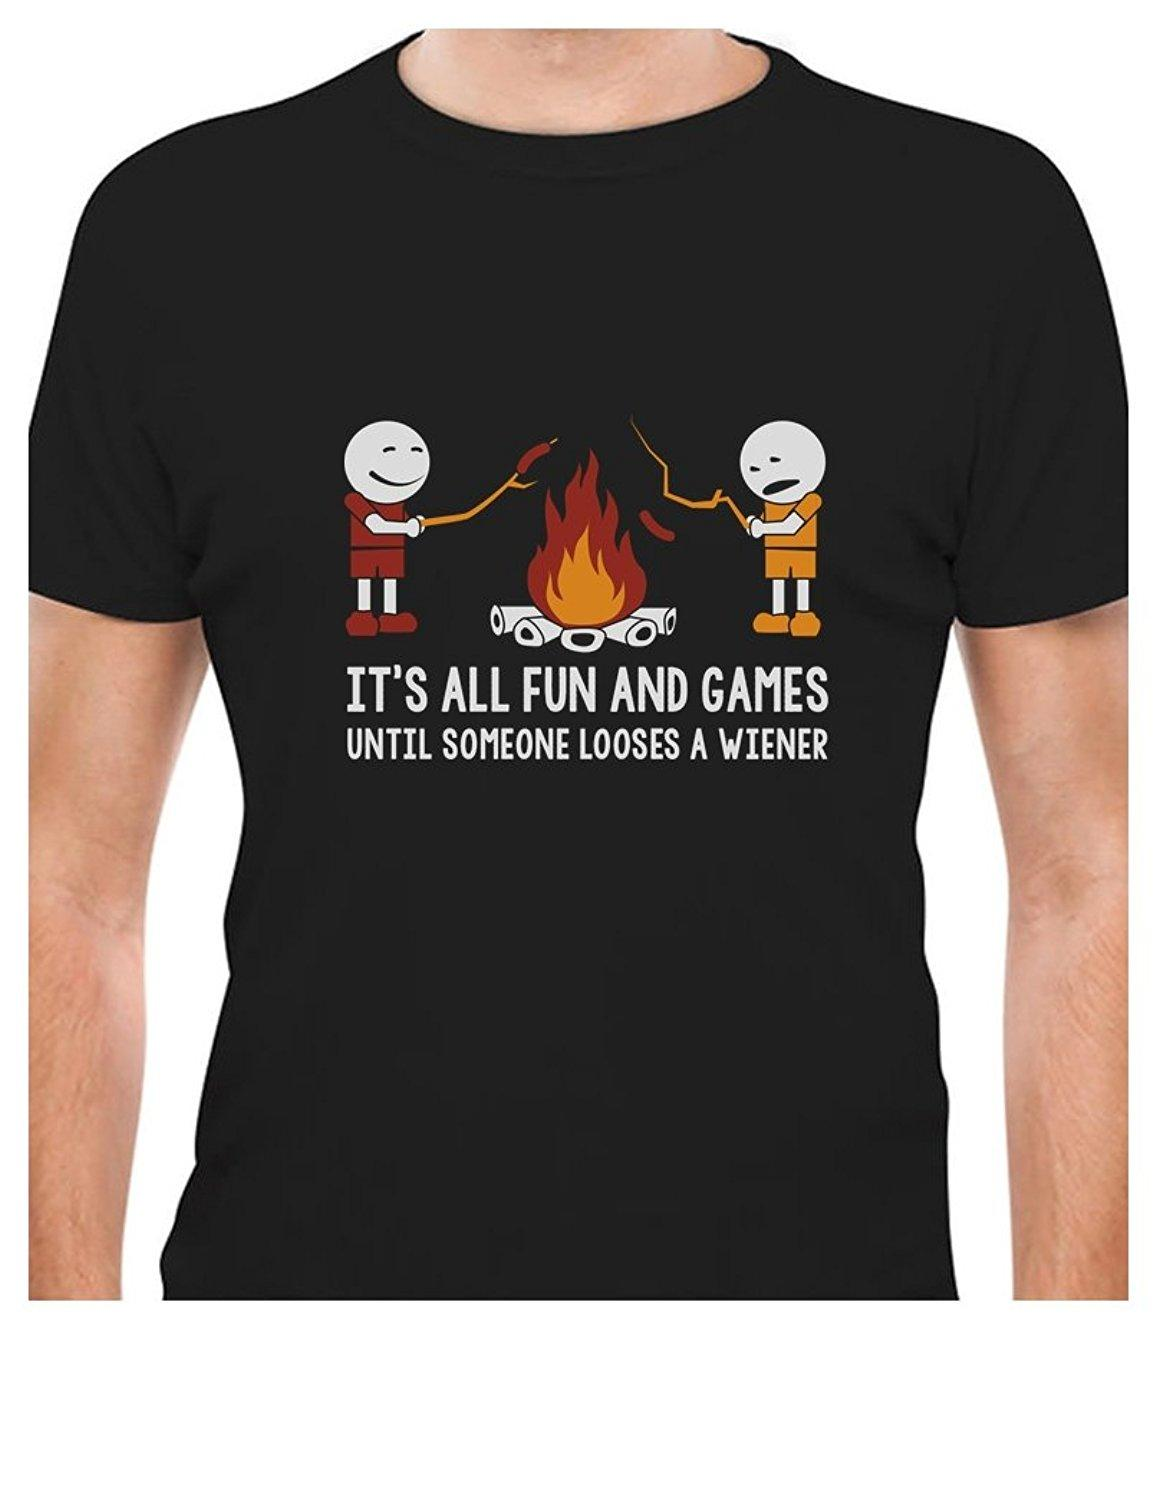 98f983b3 Printed Tee Shirt Design It'S All Fun And Games Until Someone Looses A  Weiner T Shirt Circle T Shirt Designers Buy Shirts T Shirt Designers From  Bstdhgate04 ...